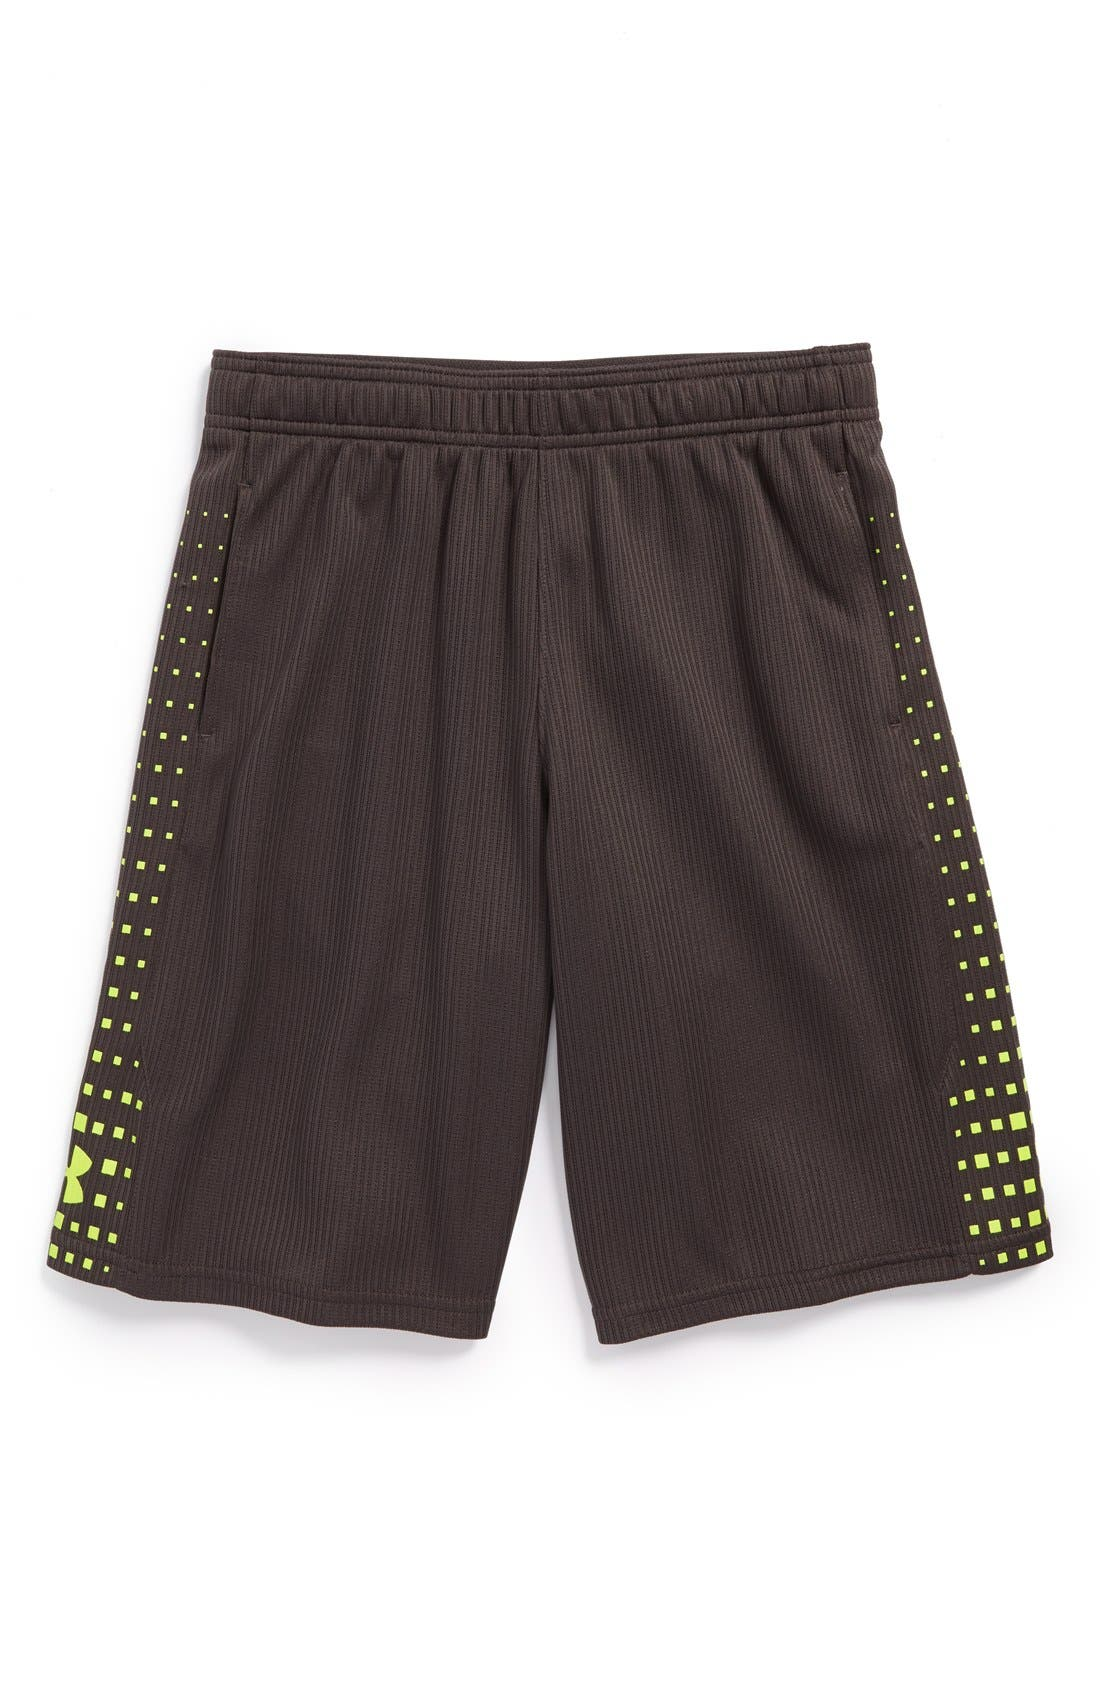 Alternate Image 1 Selected - Under Armour 'Done. Done. Done.' HeatGear® Shorts (Big Boys)